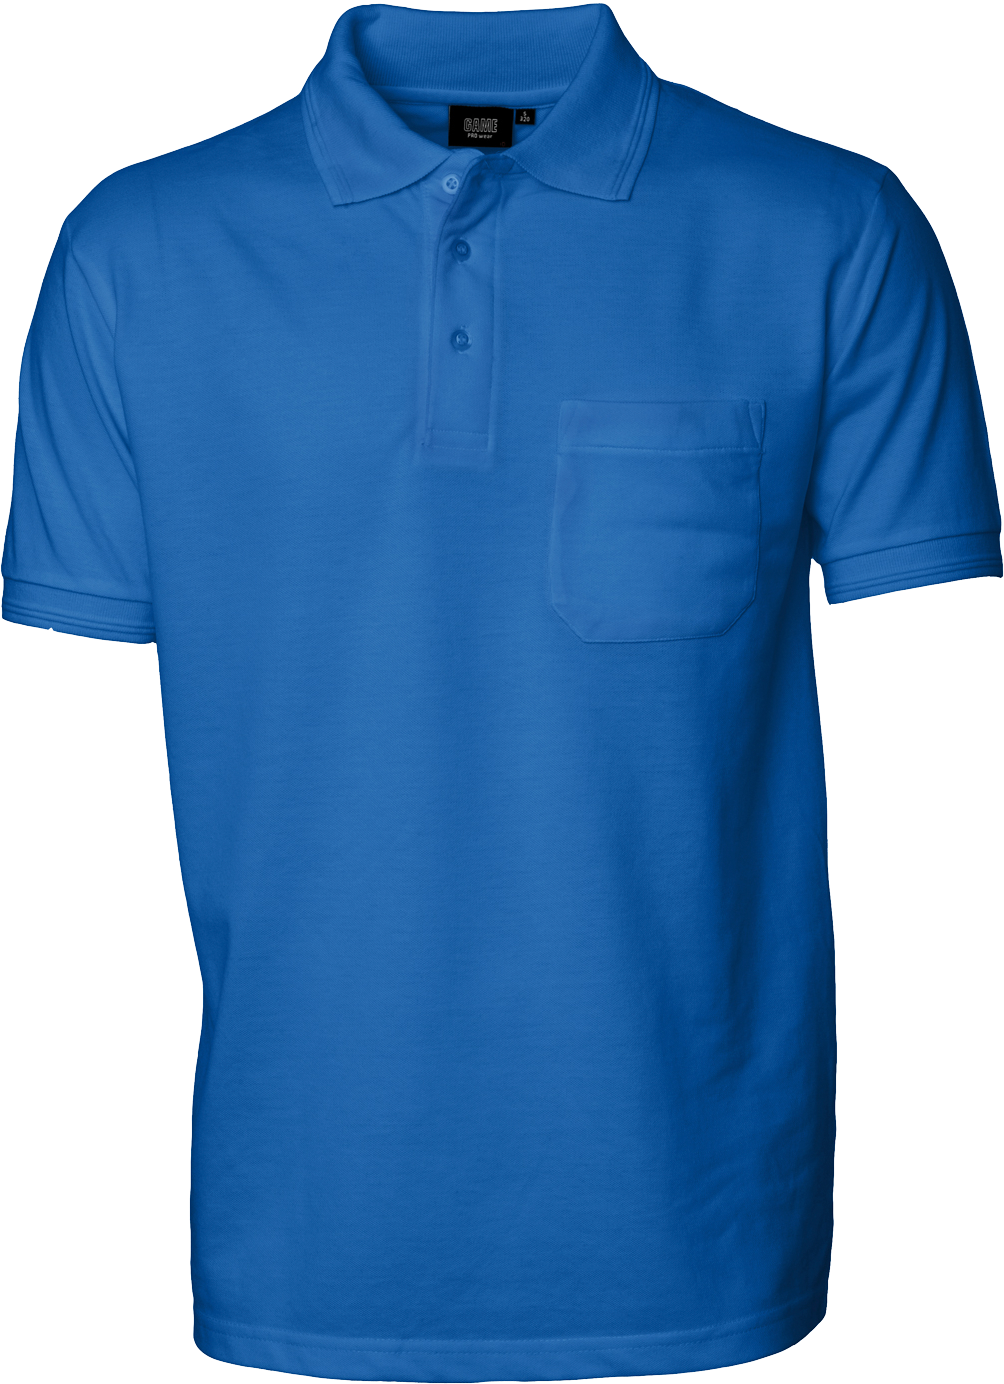 Mens Polo Shirt w. breastpocket, Prowear (825028100)